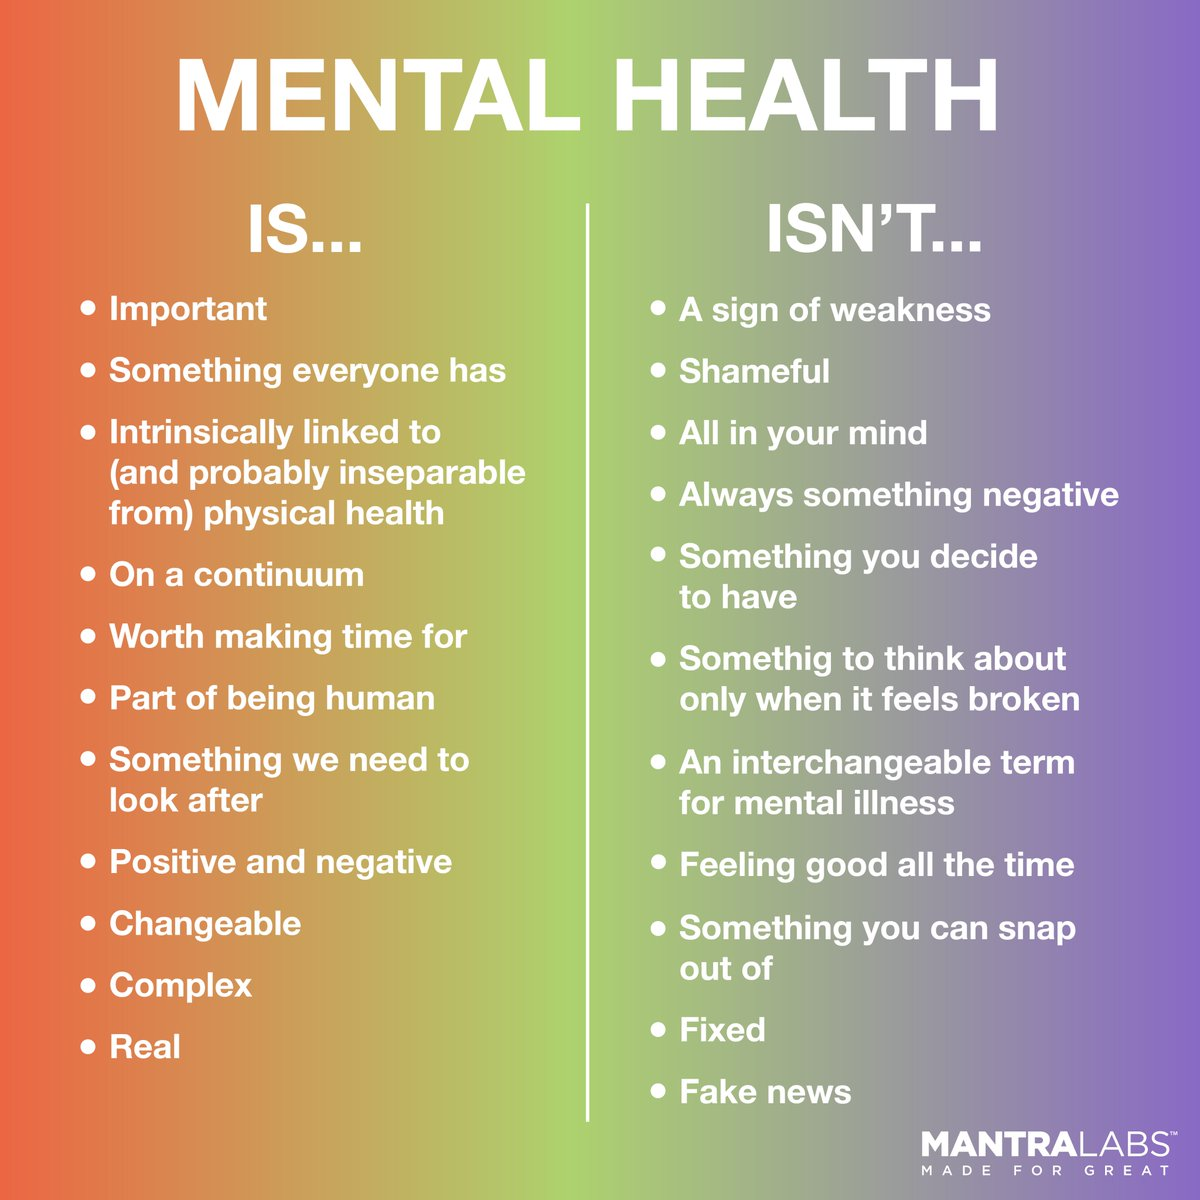 You can't fix what you don't talk about. We all have two equally important sides to our health - mental and physical. We simply don't talk about the mental side enough, but our goal is to change the conversation around mental health with the help of y'all 💜